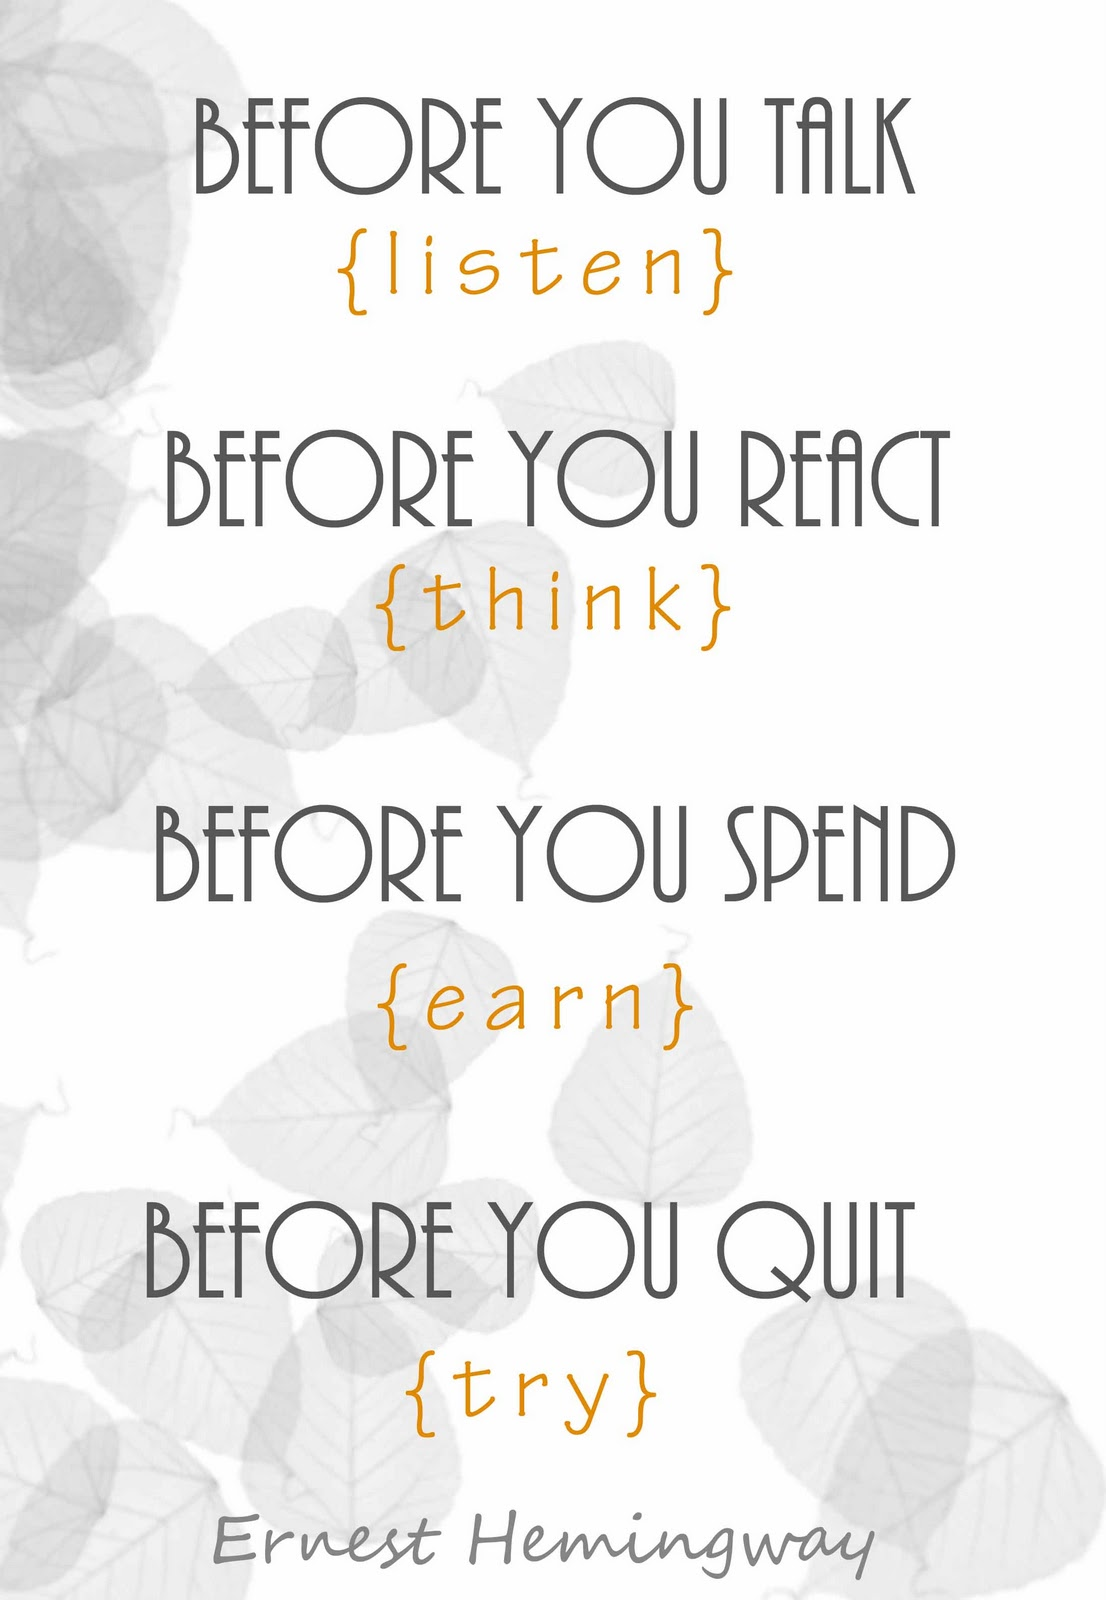 Fabulous Clarity Quote By Ernest Hemingway~ Before you talk listen